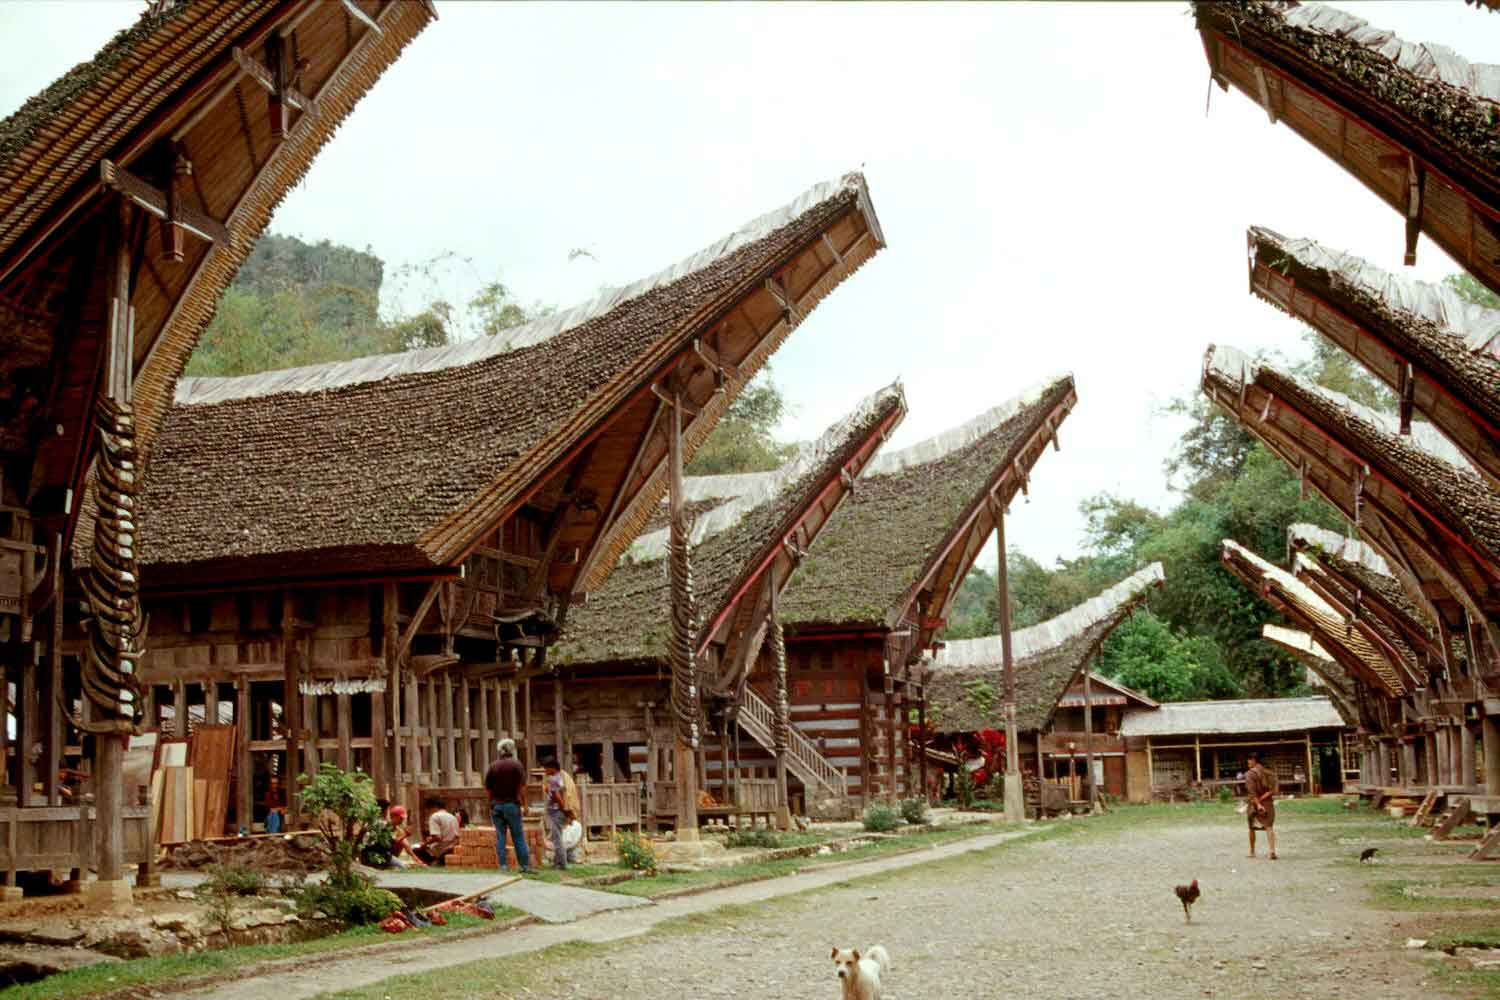 kete kesu village authentique sulawesi indonesie